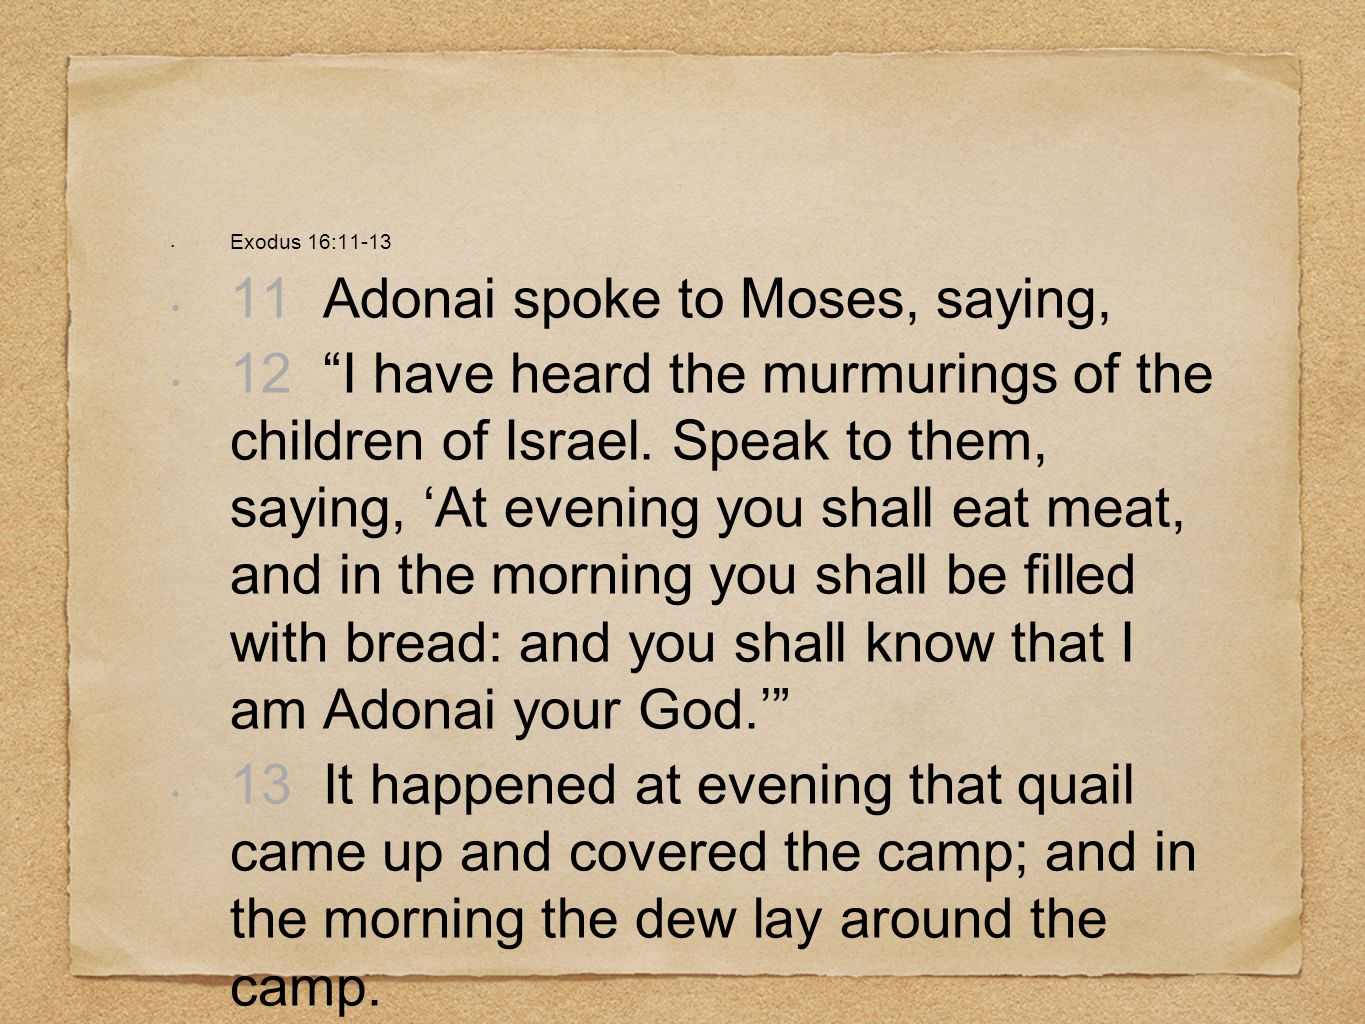 11 Adonai spoke to Moses, saying,